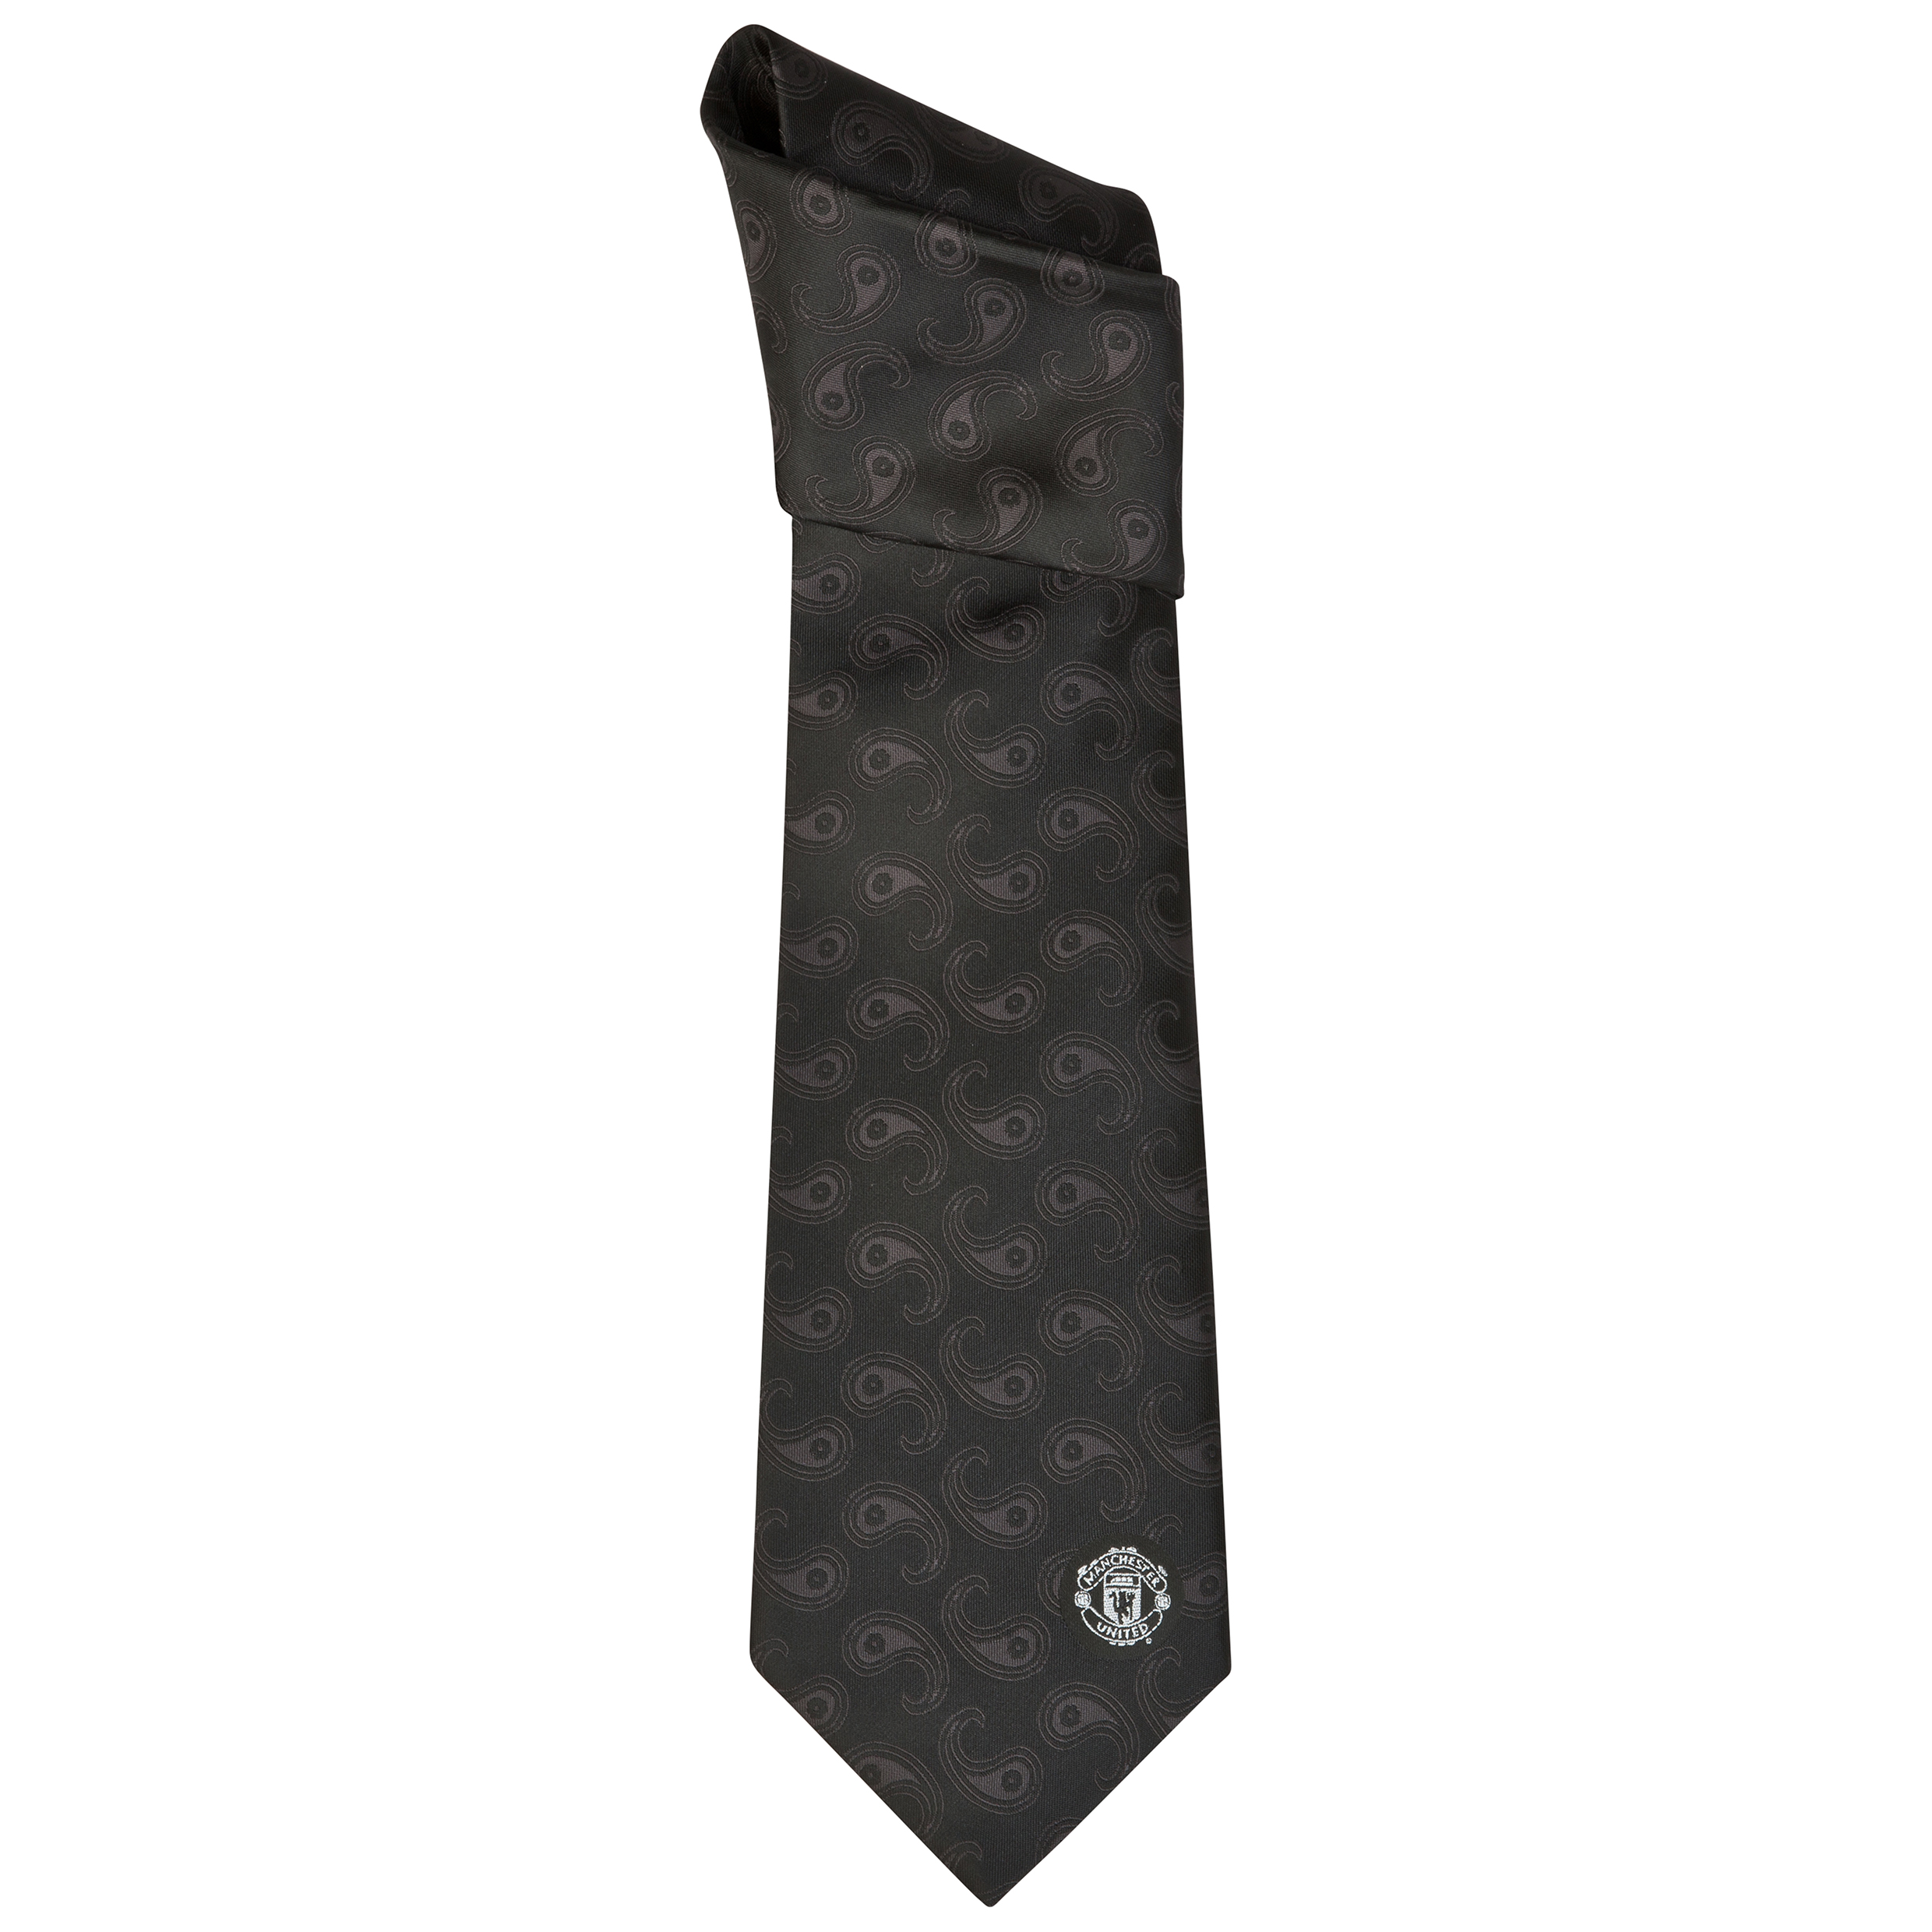 Manchester United Fashion Tie - Polyester